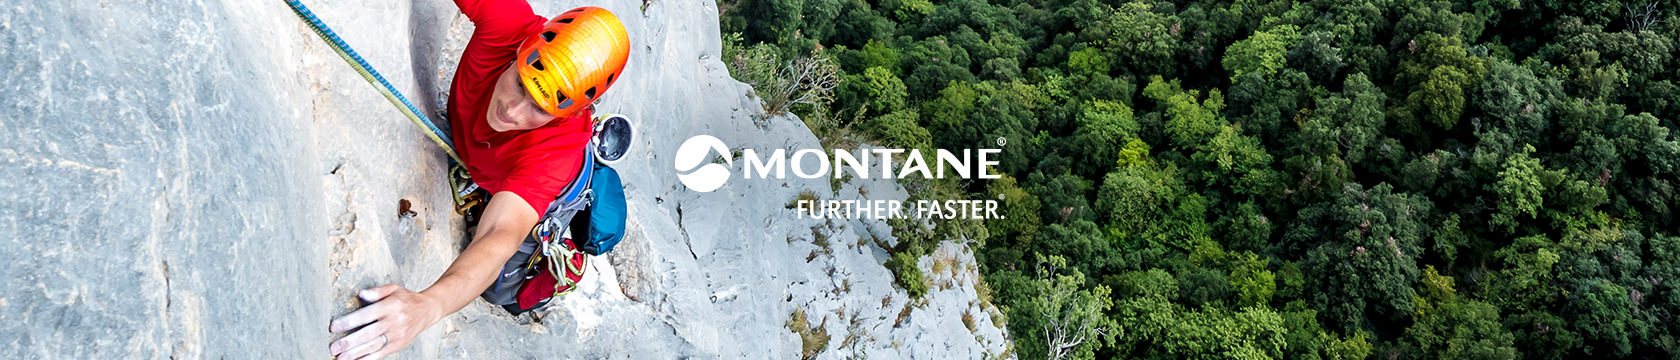 Man climbing wearing Montane gear.